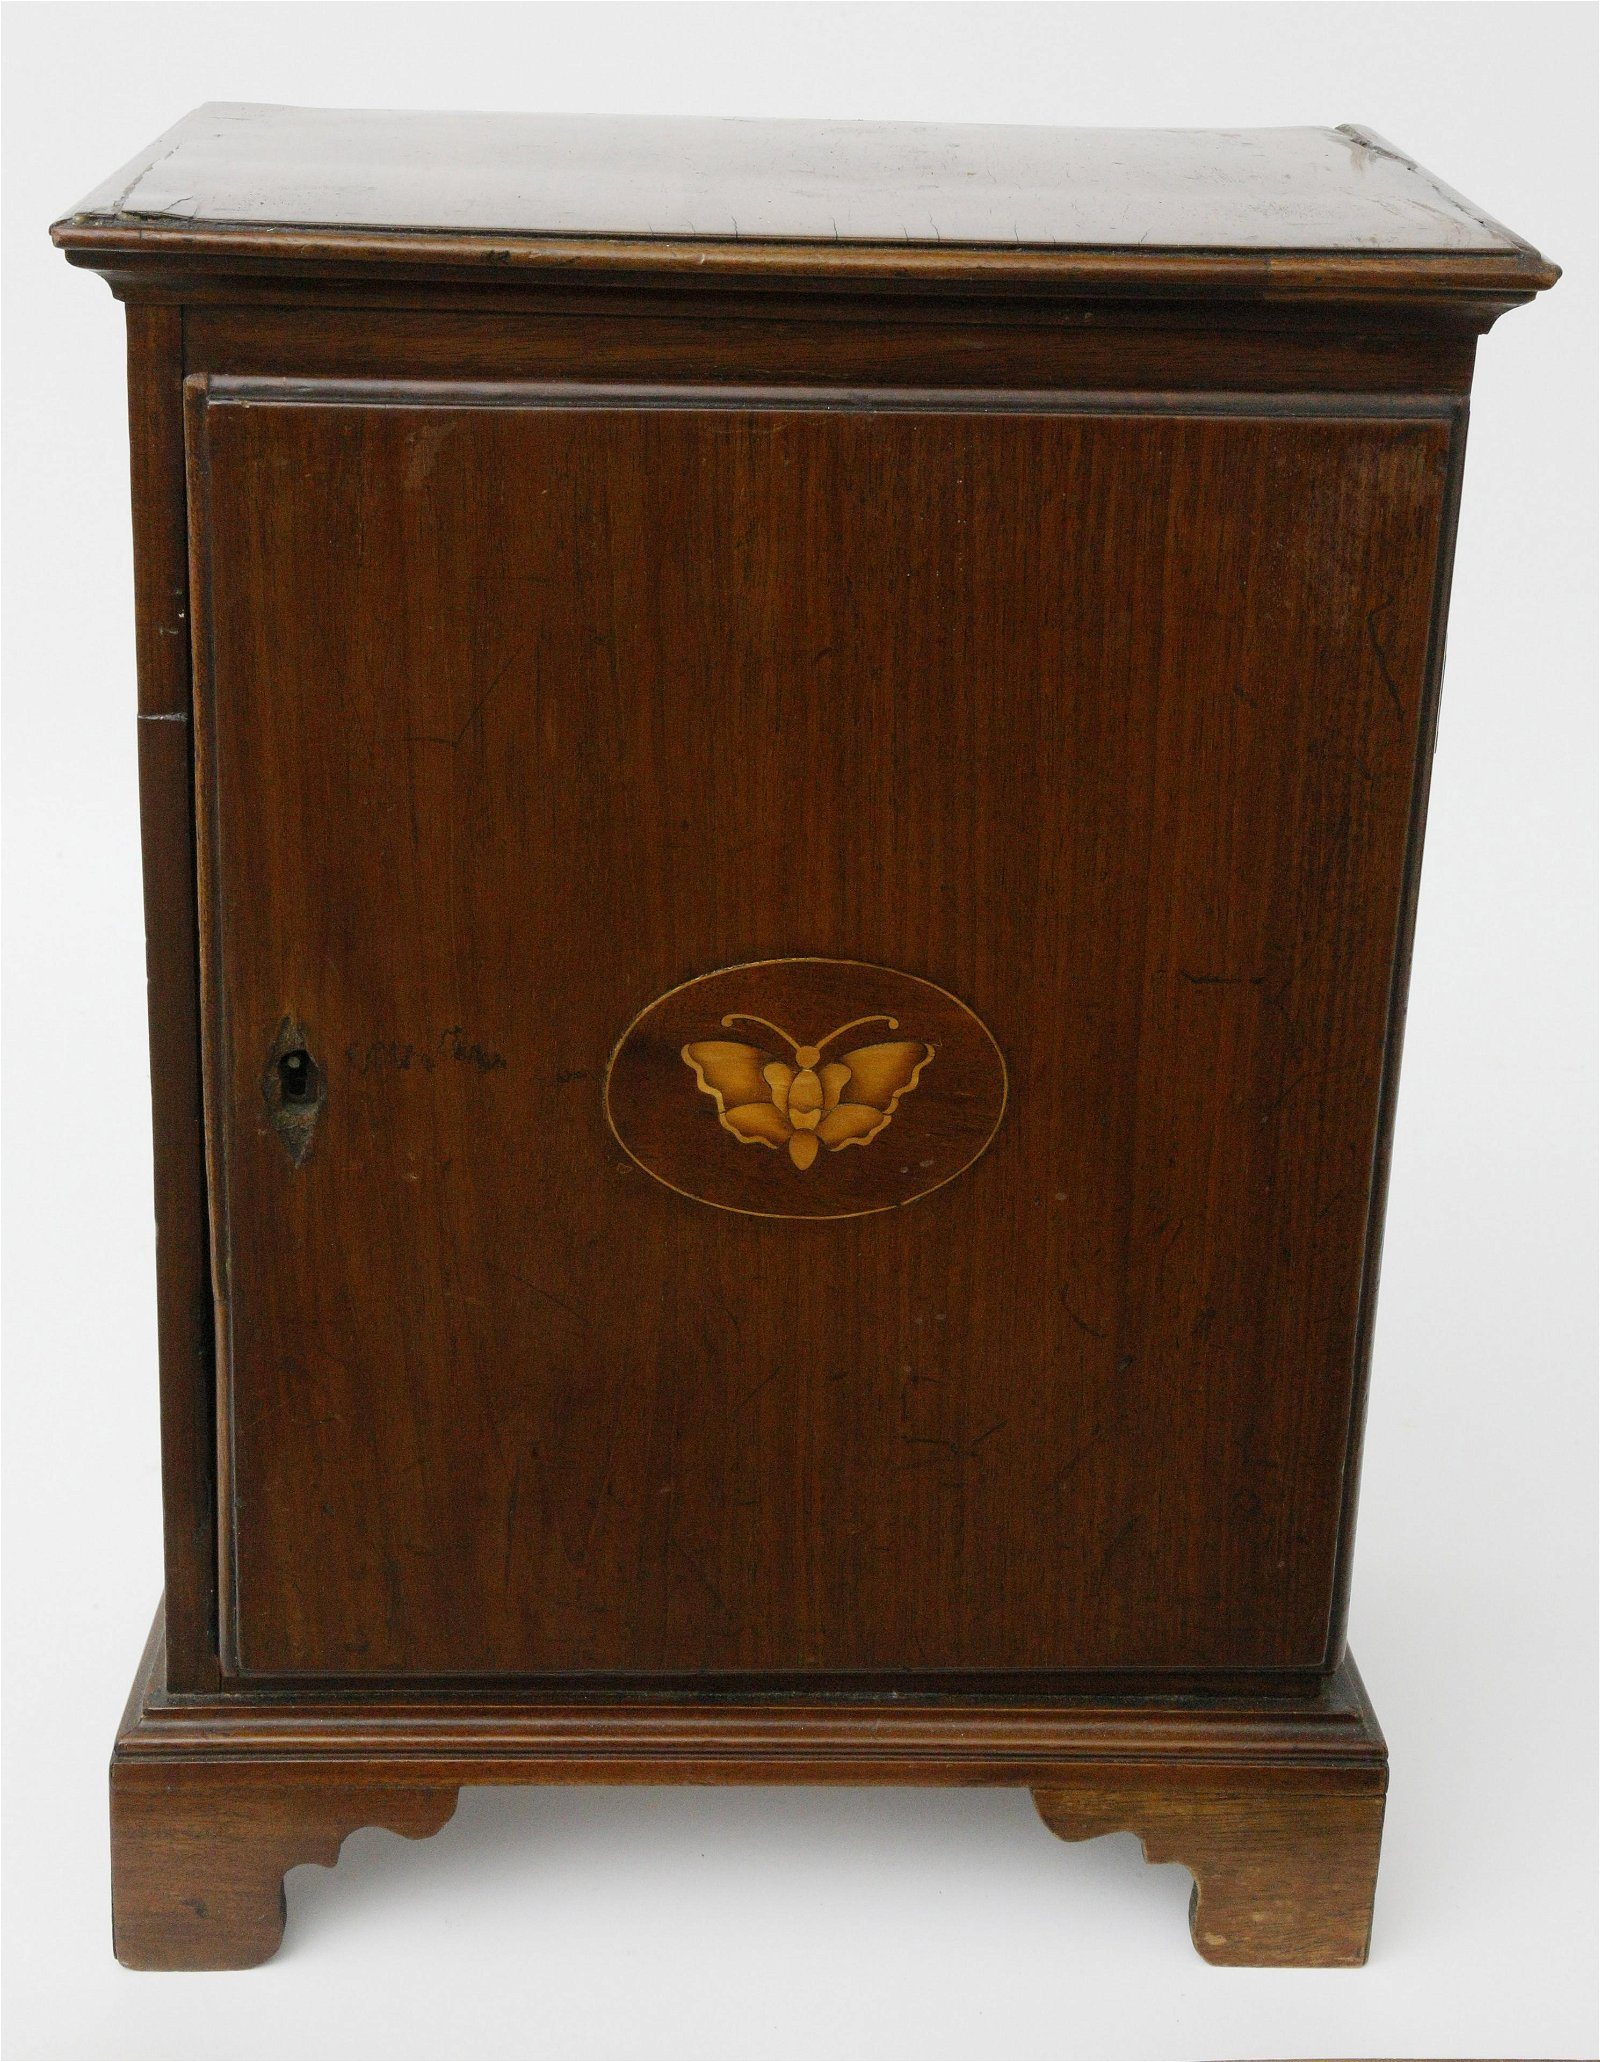 American Miniature Mahogany 8 Drawer Spice Chest,